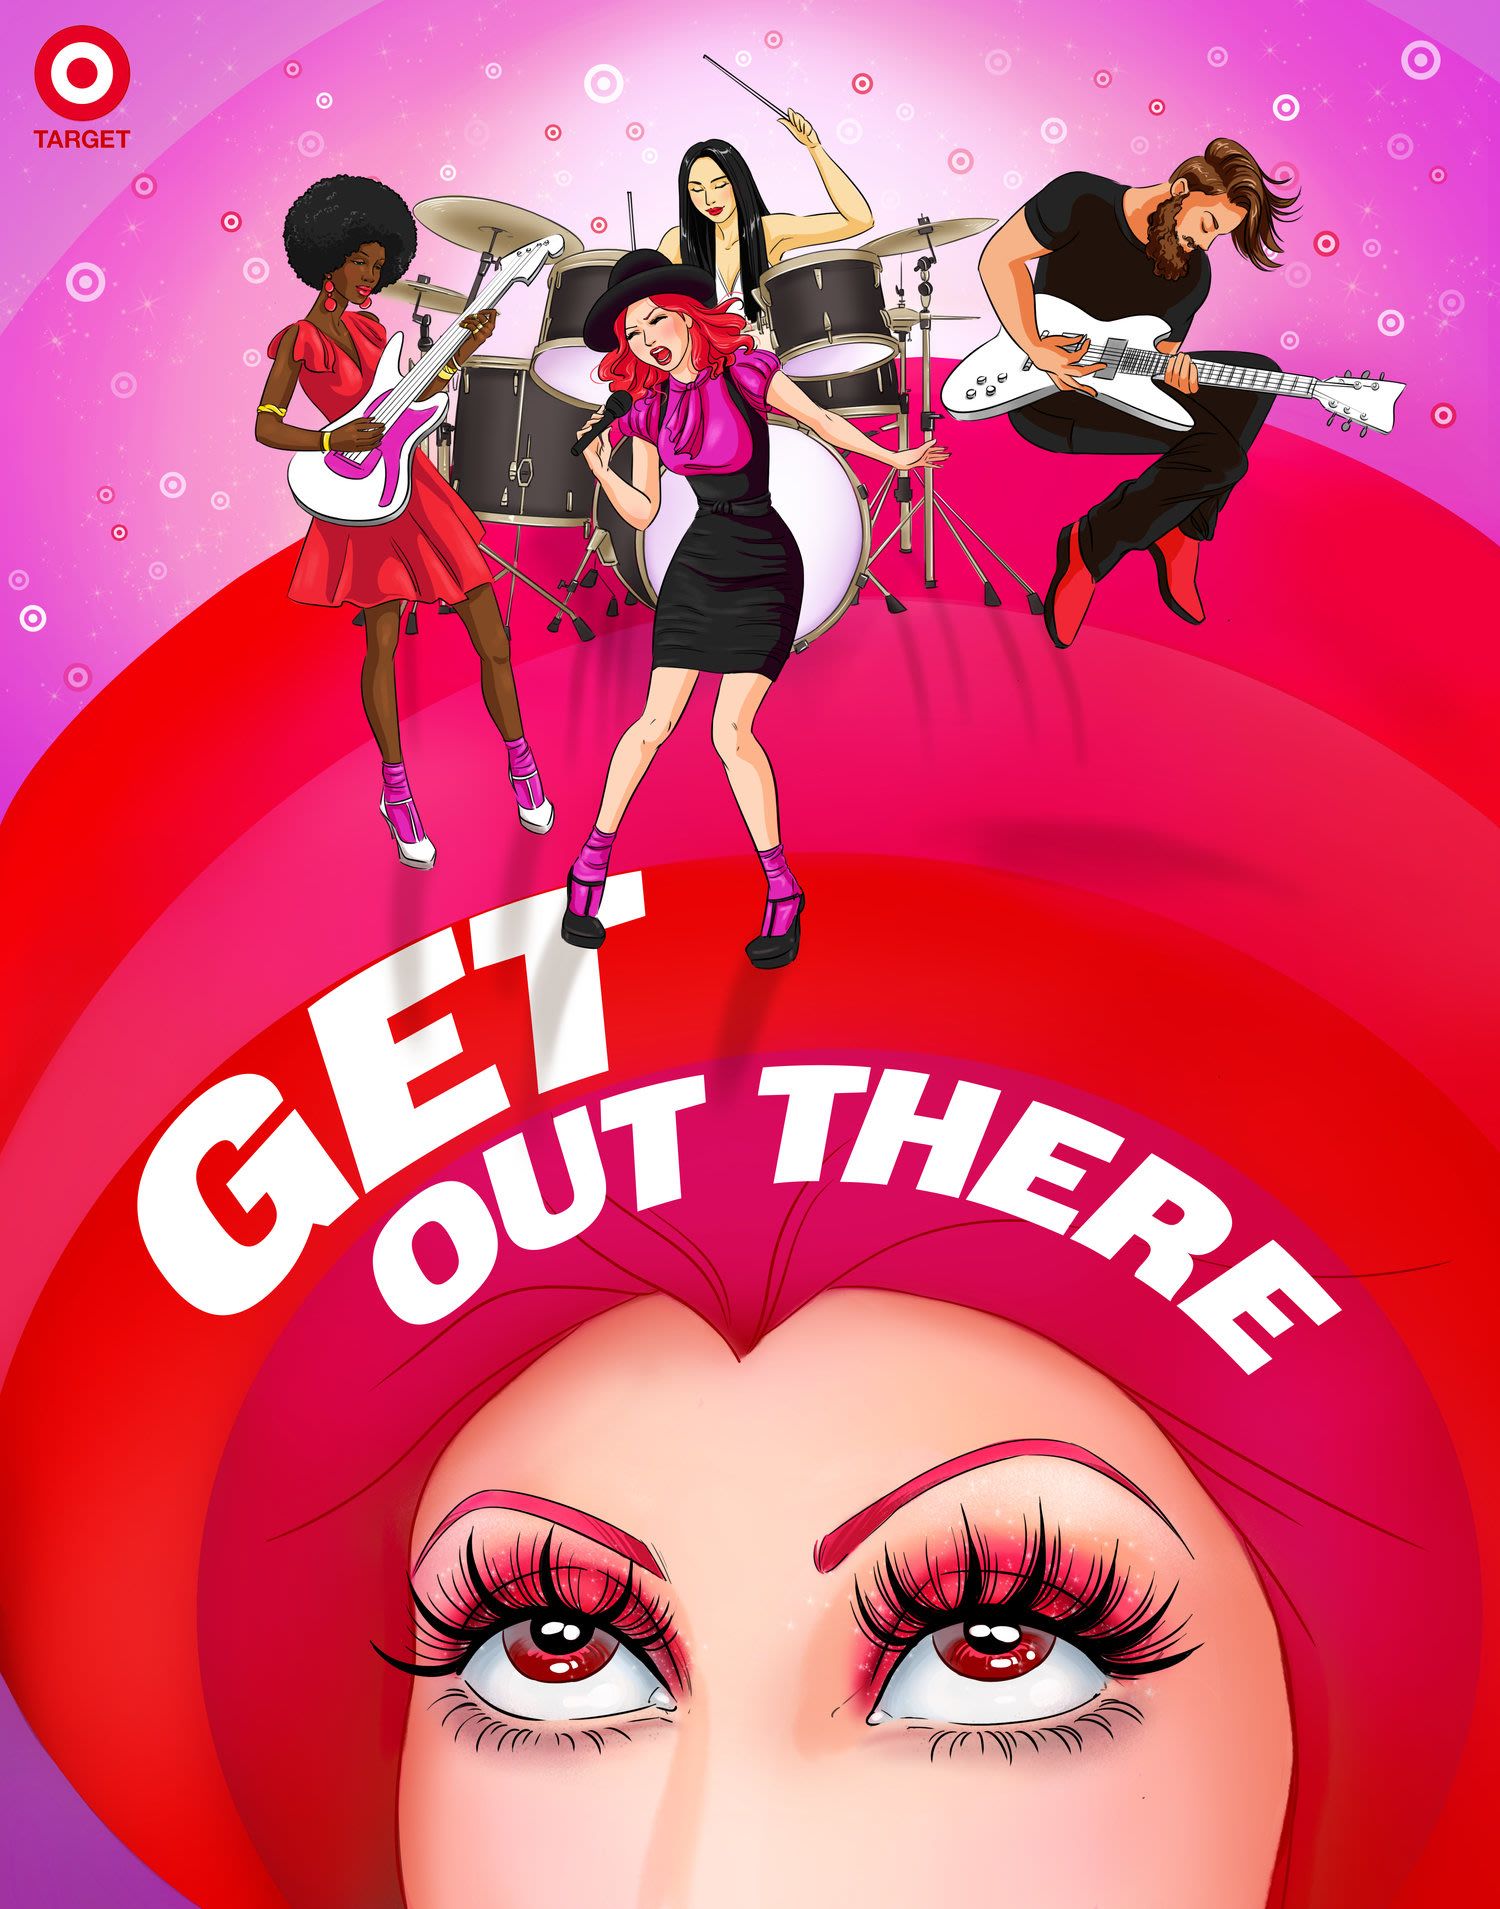 Target Style 'Get out there'